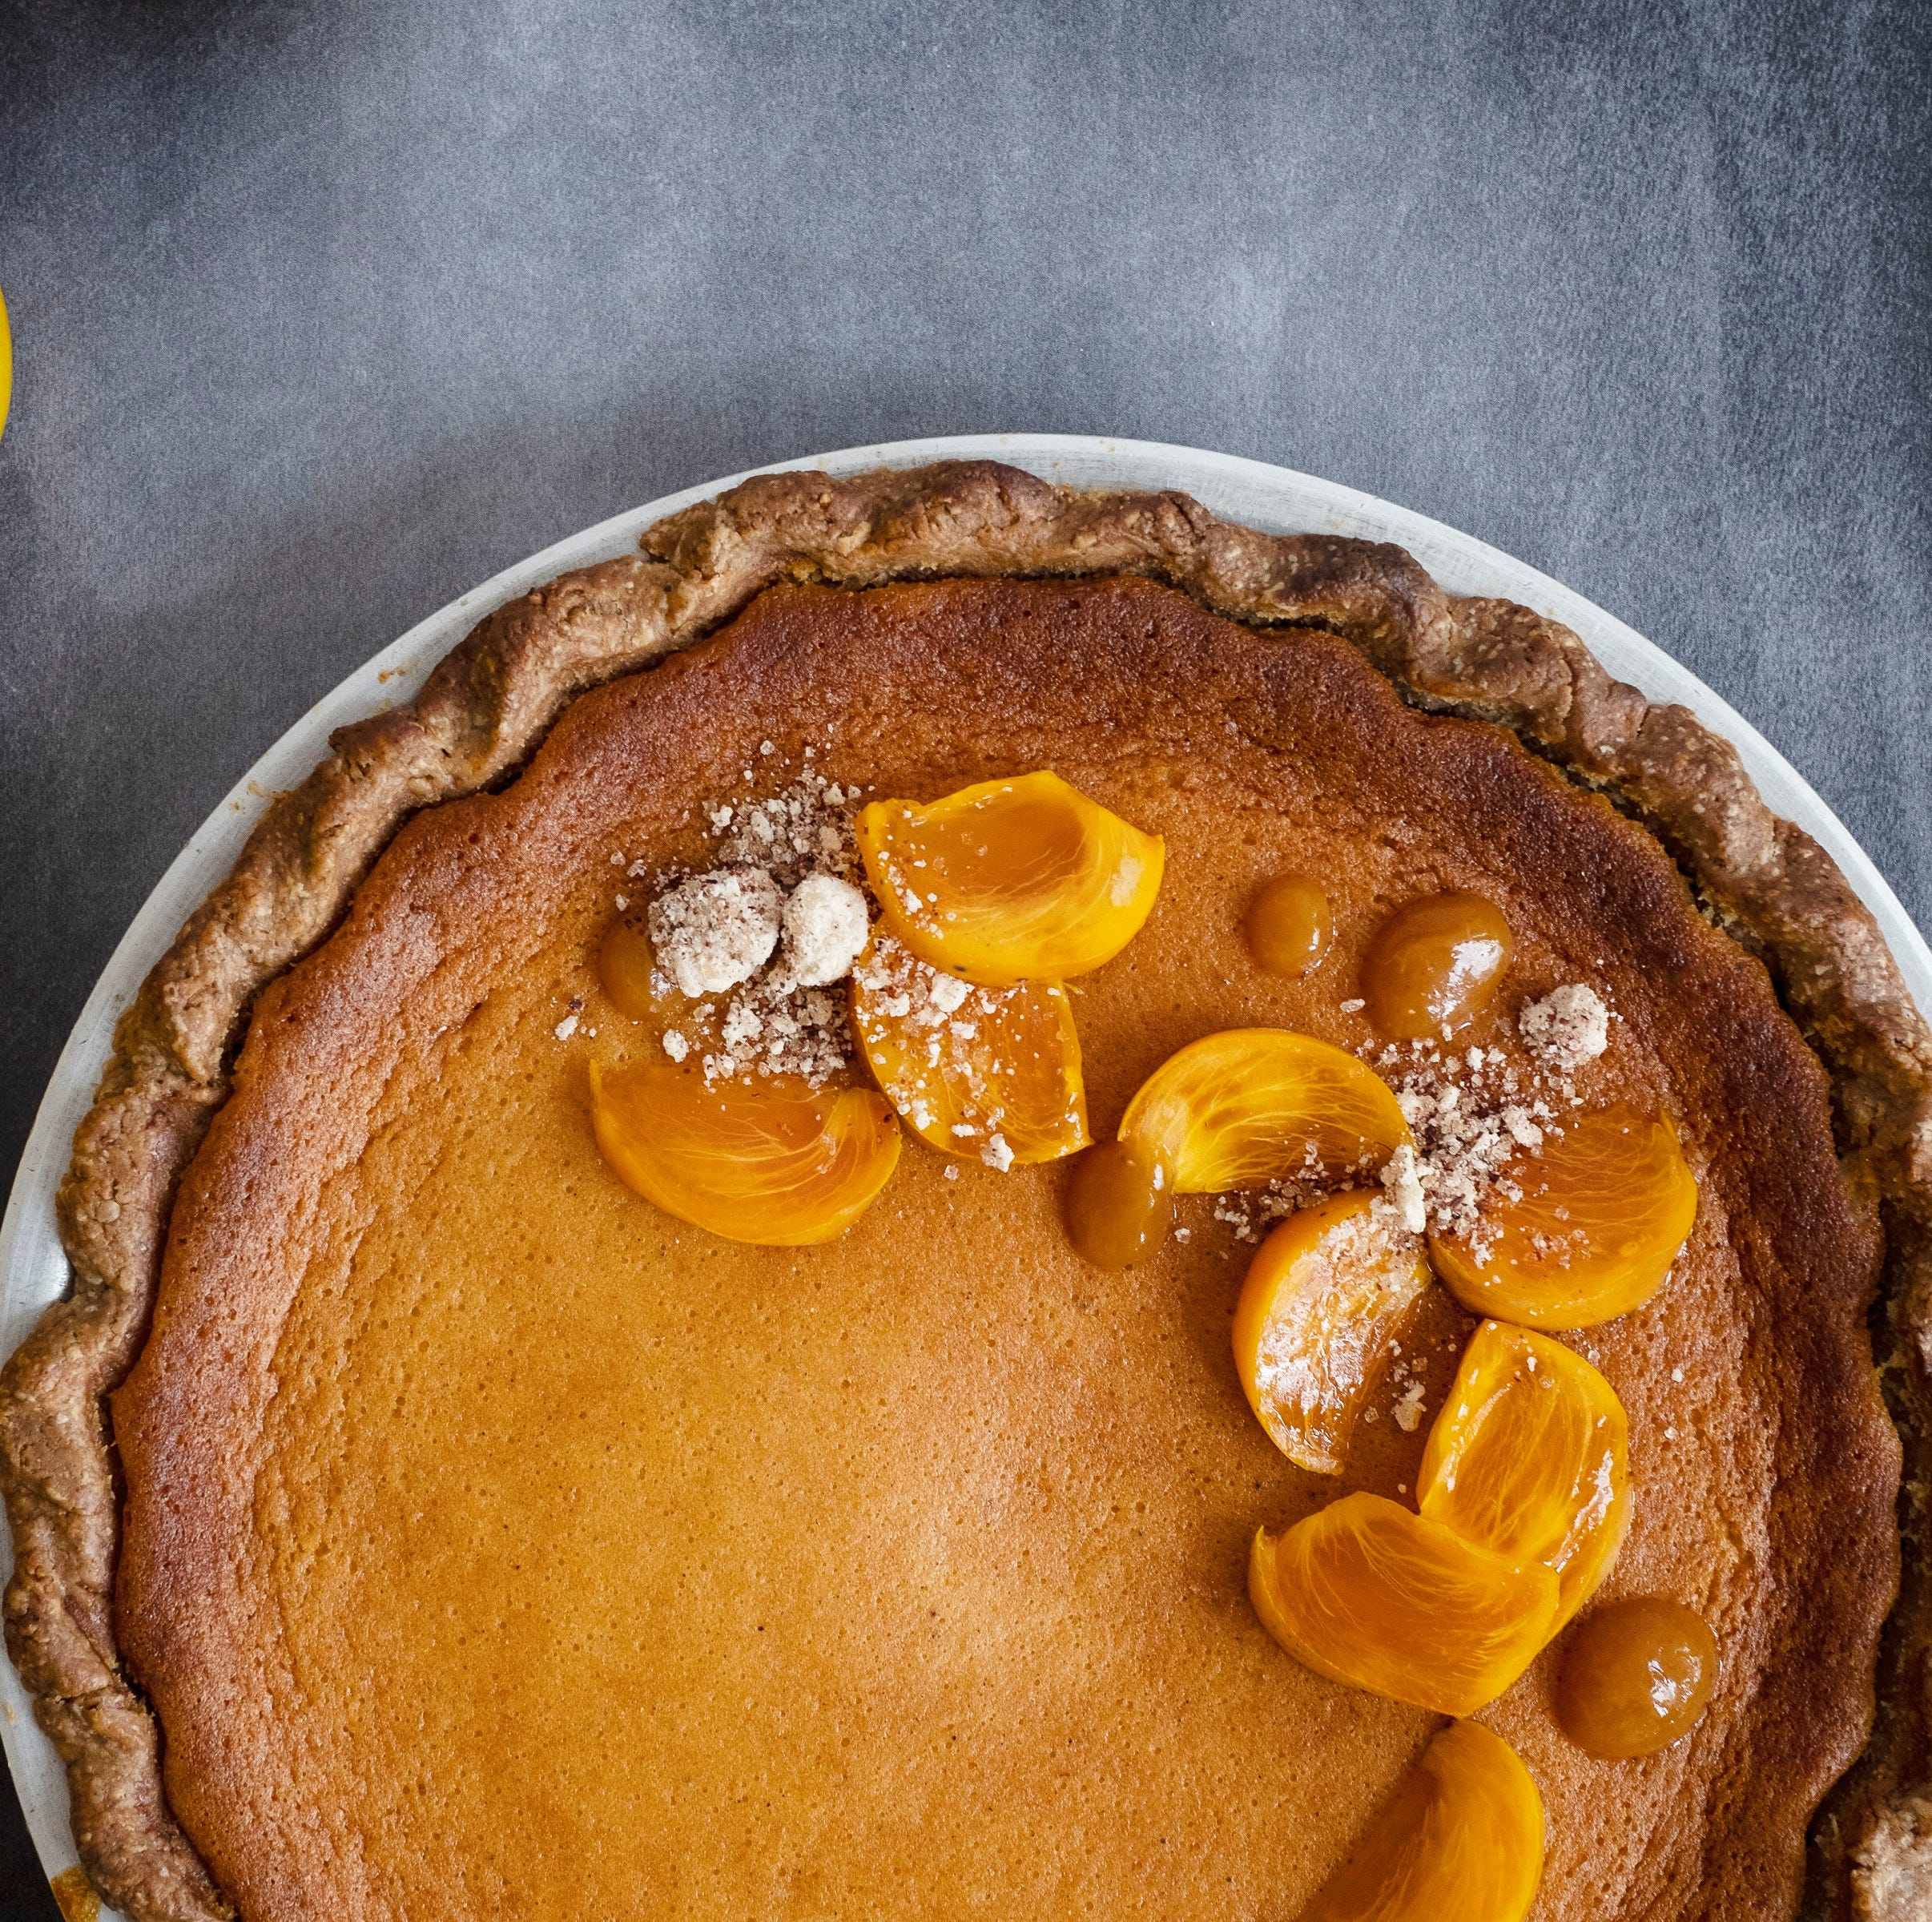 Just desserts: 3 options for ordering your Thanksgiving pies in this year